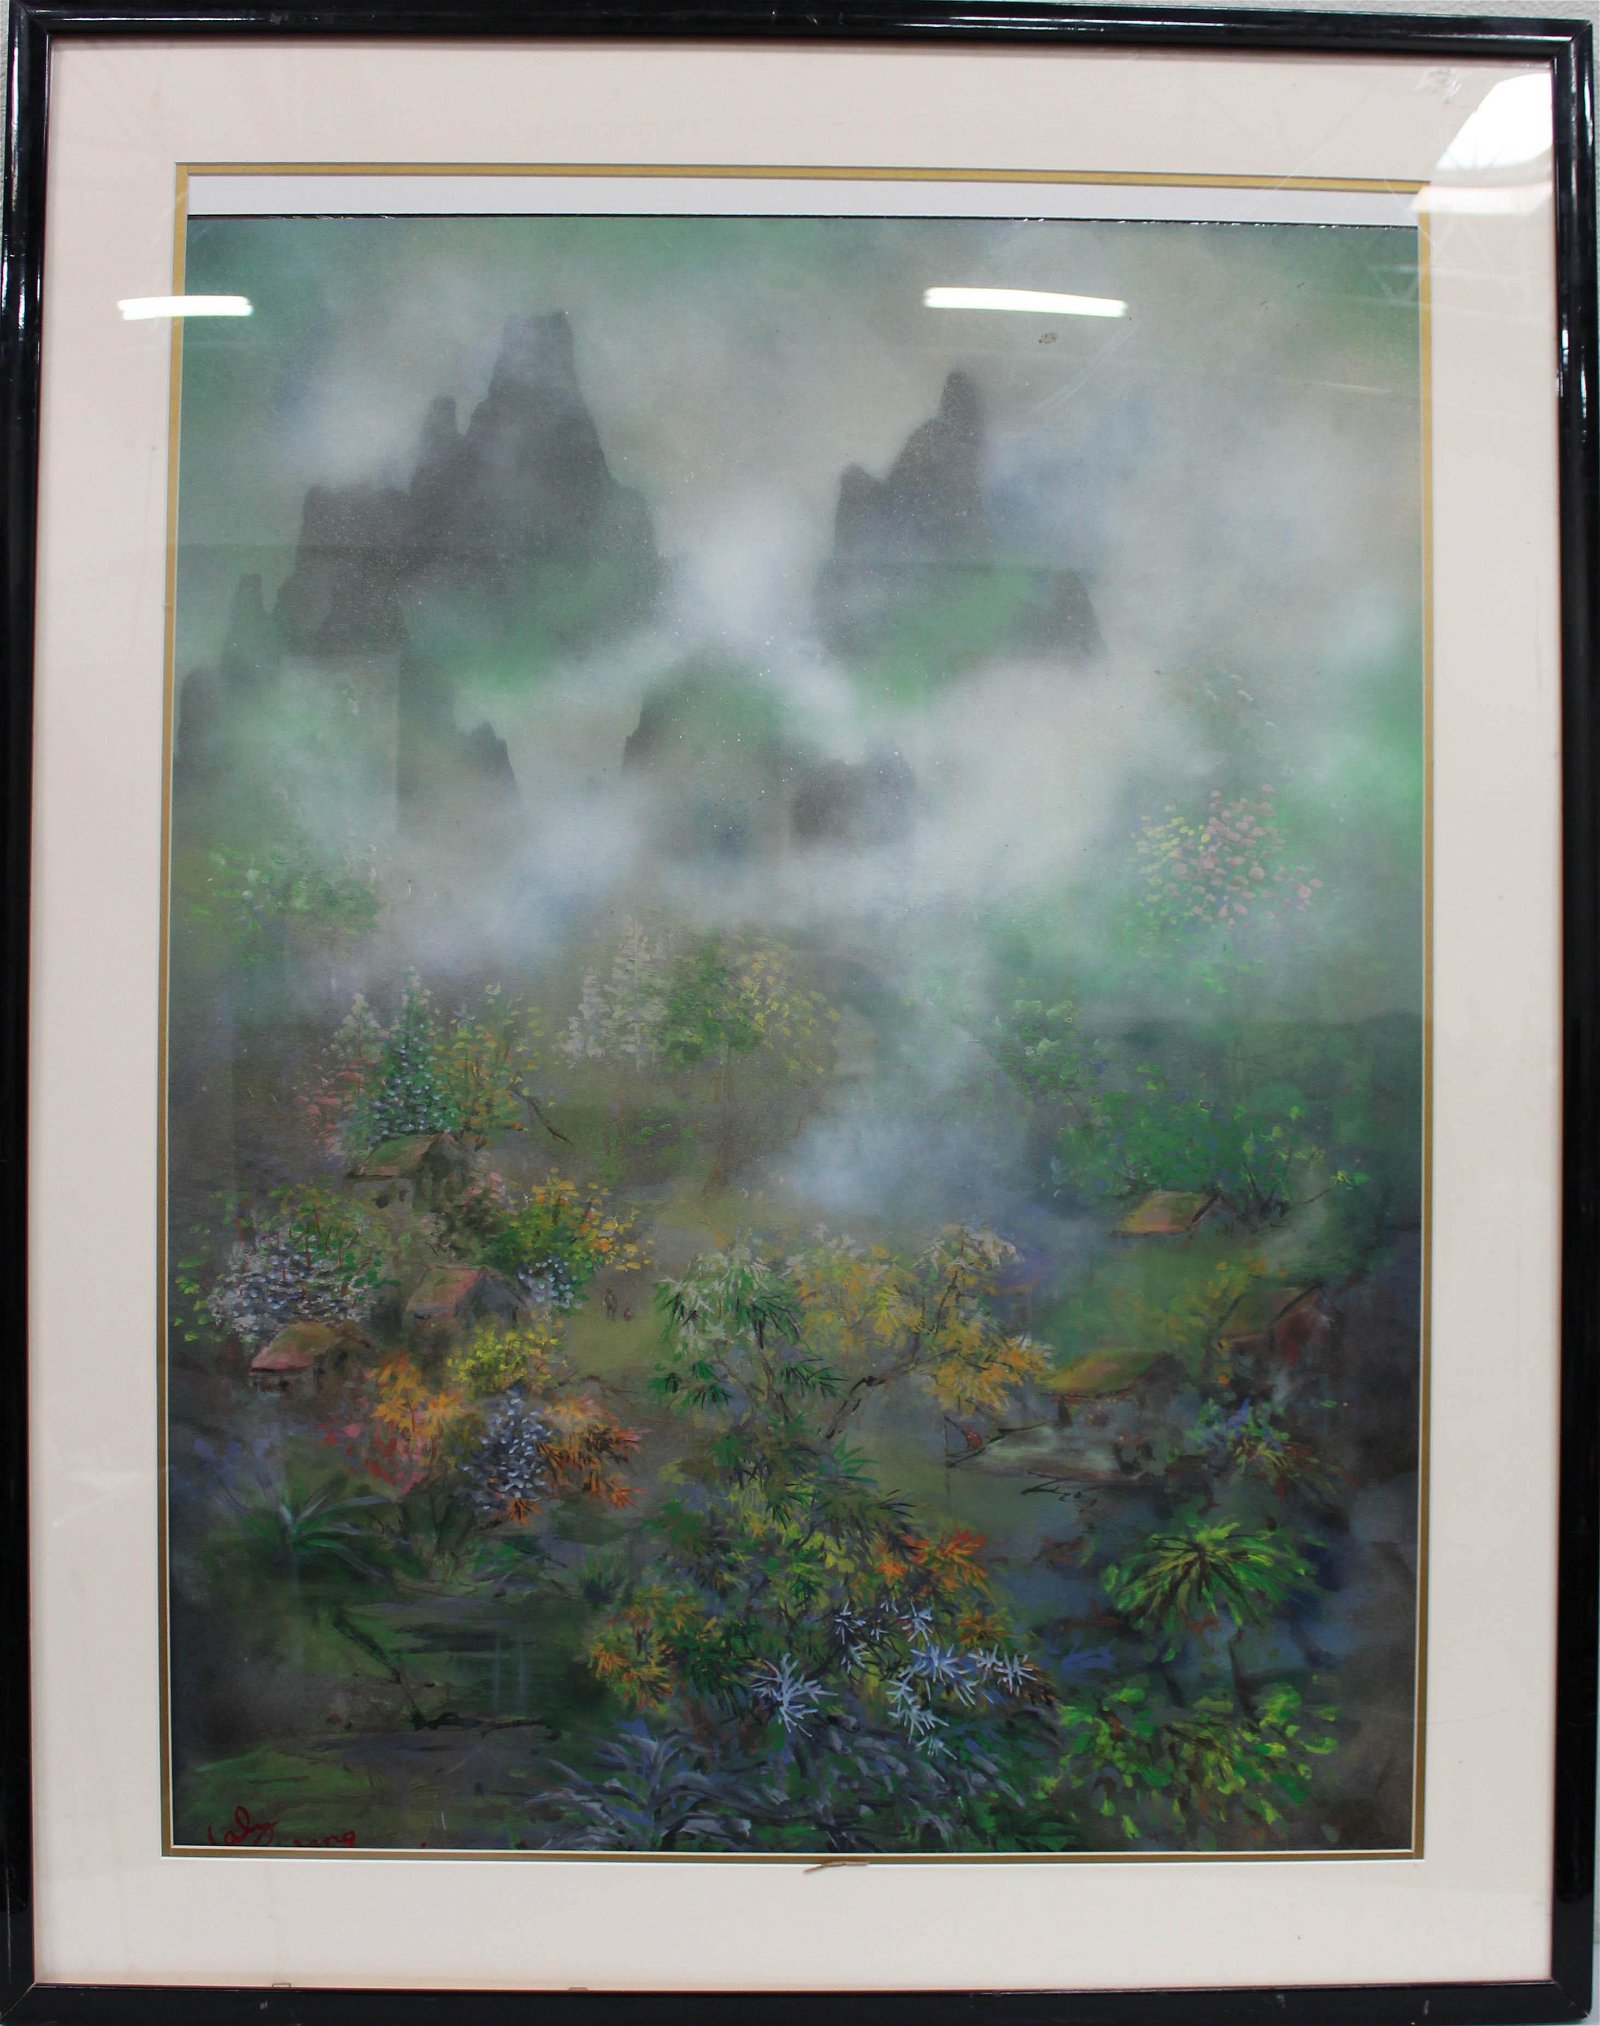 A Frame Painting